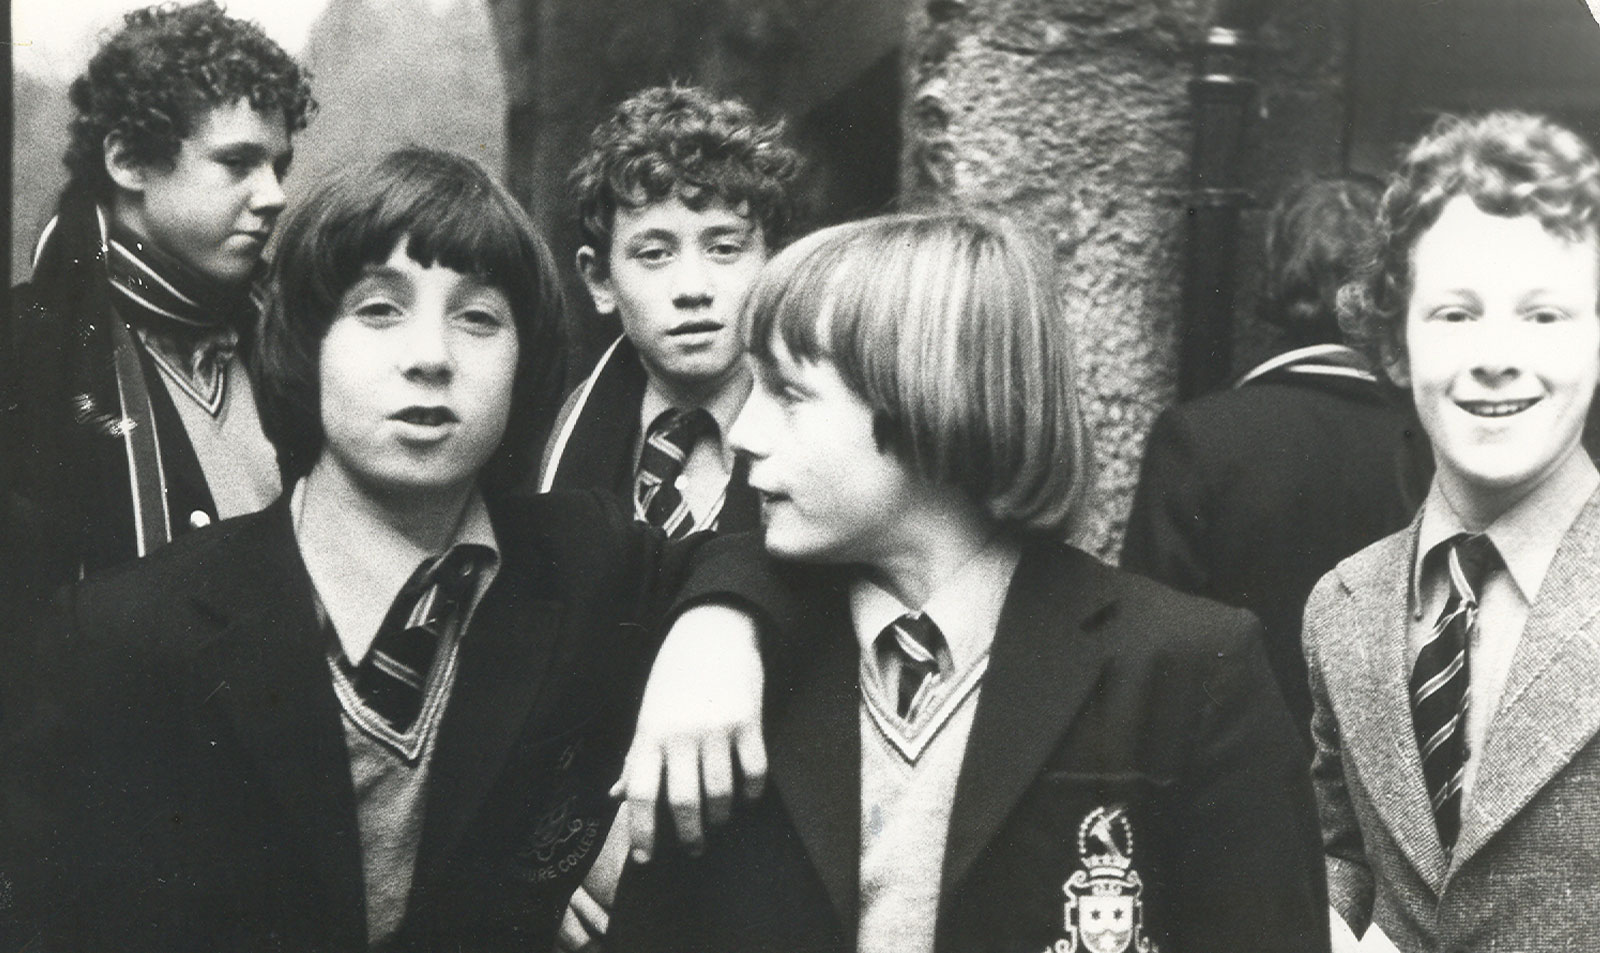 Terenure College in the 1970s